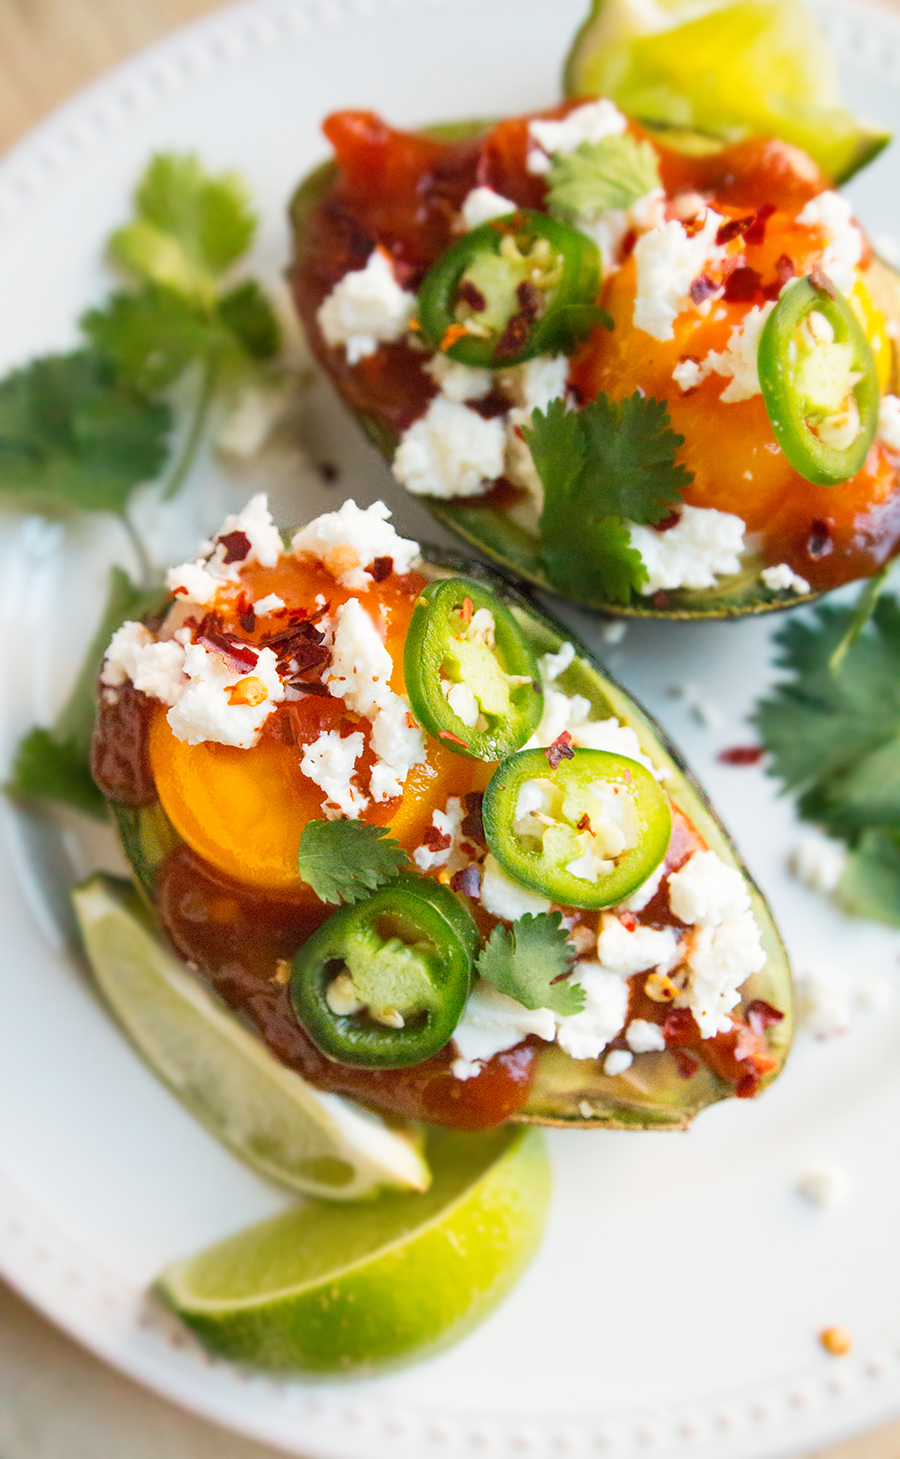 Egg-Stuffed Avocado Olé makes a very special south-of-the-border breakfast or snack.